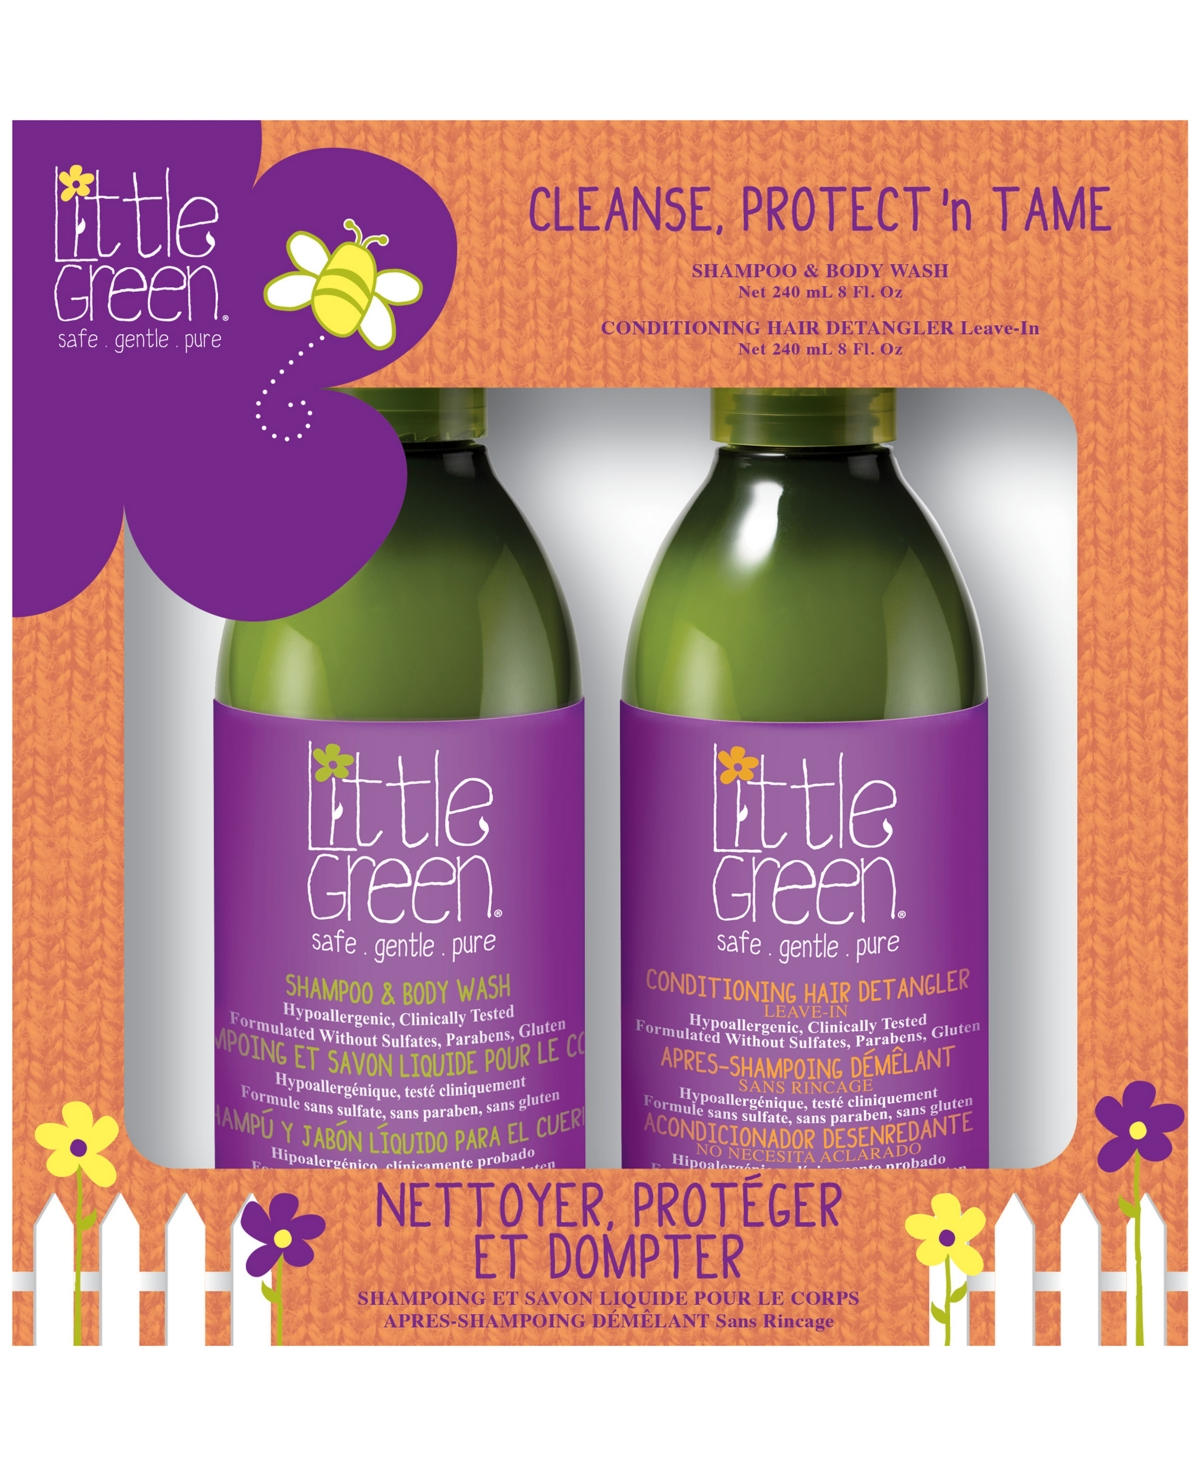 Little Green Kids Cleanse, Protect 'N'Tame Set of 2, 16 oz